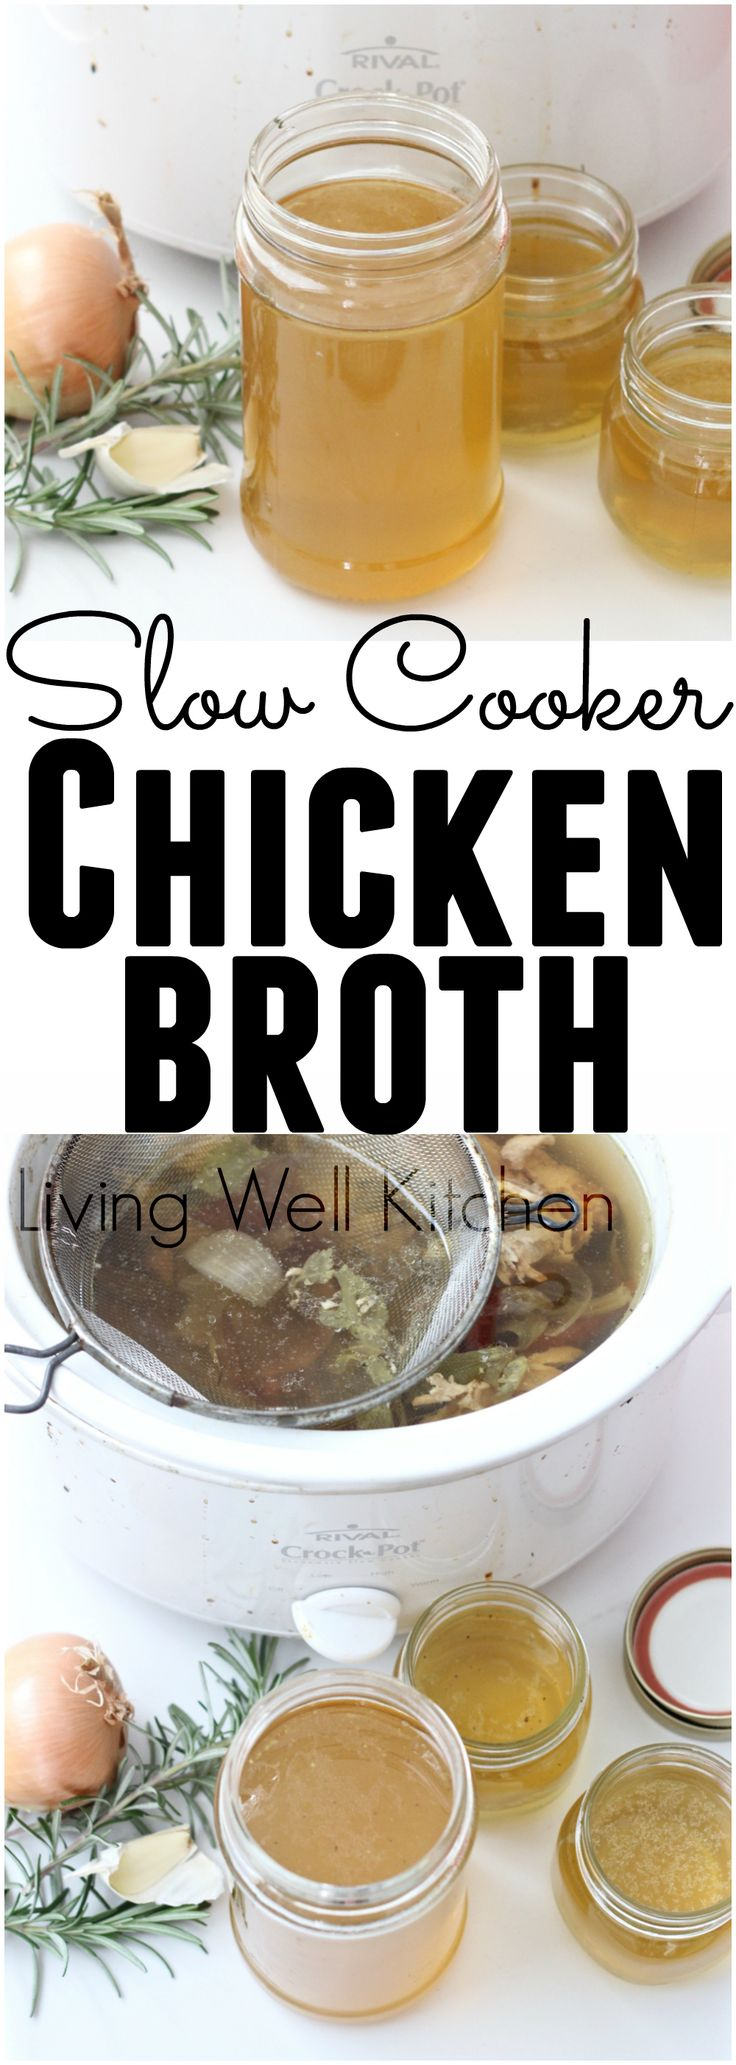 Making homemade chicken broth is easy when you use your slow cooker